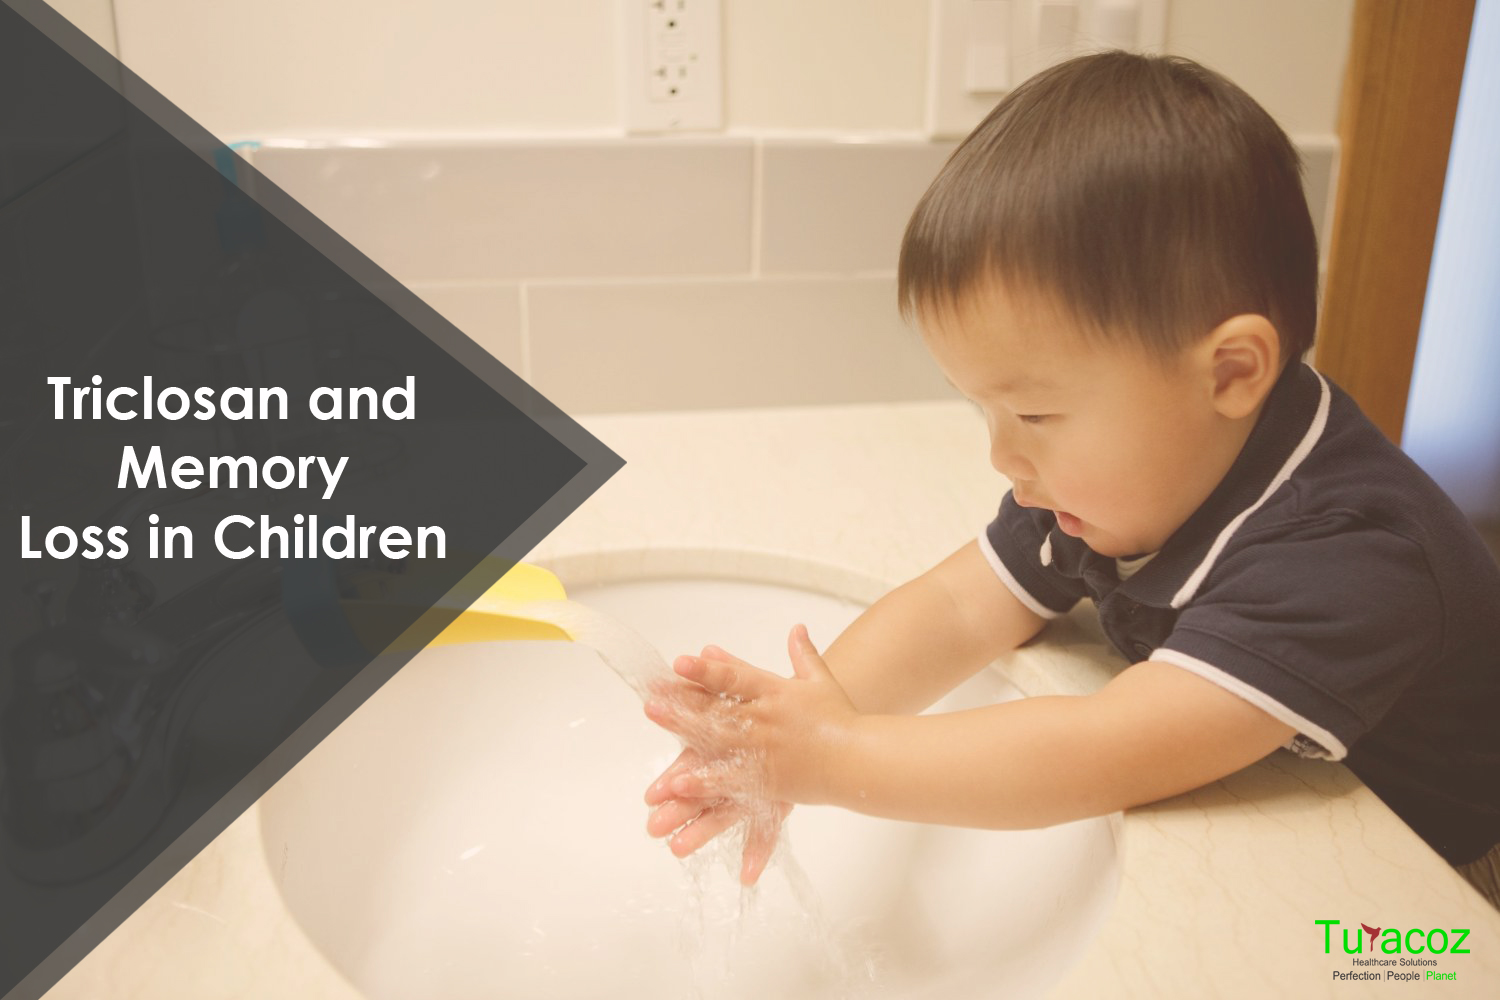 Triclosan and Memory Loss in Children